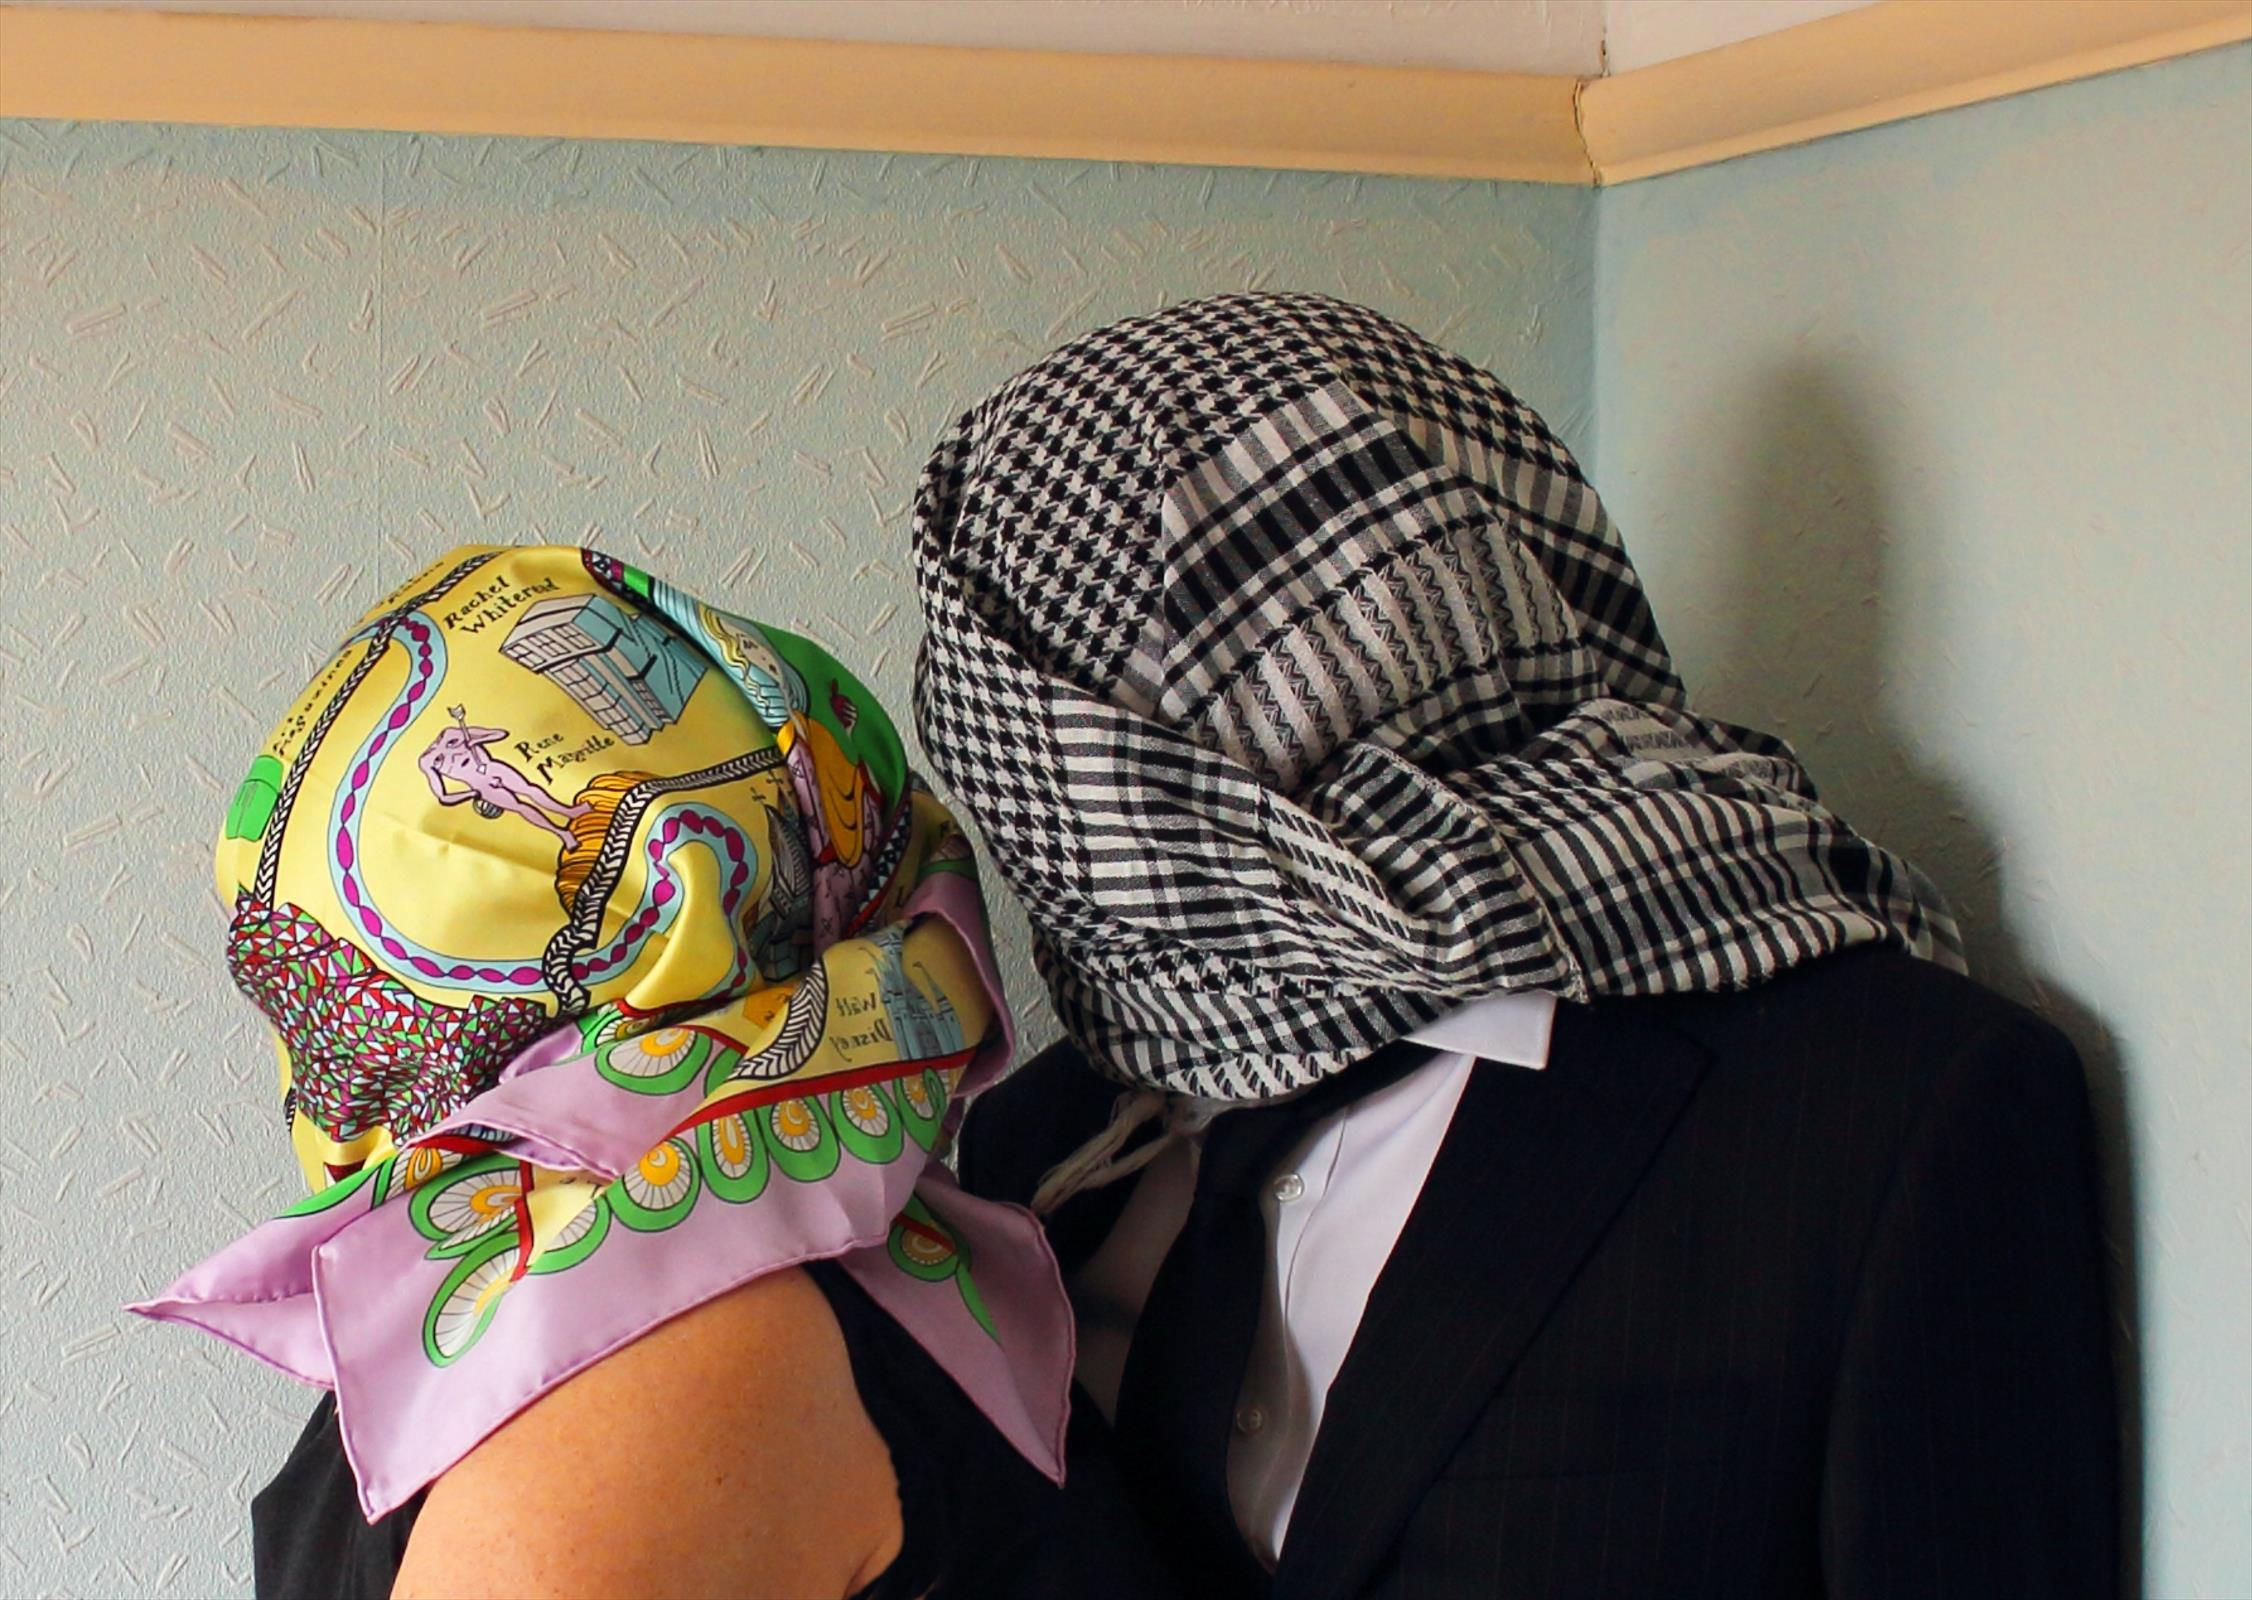 After Magritte: The Lovers of Culture